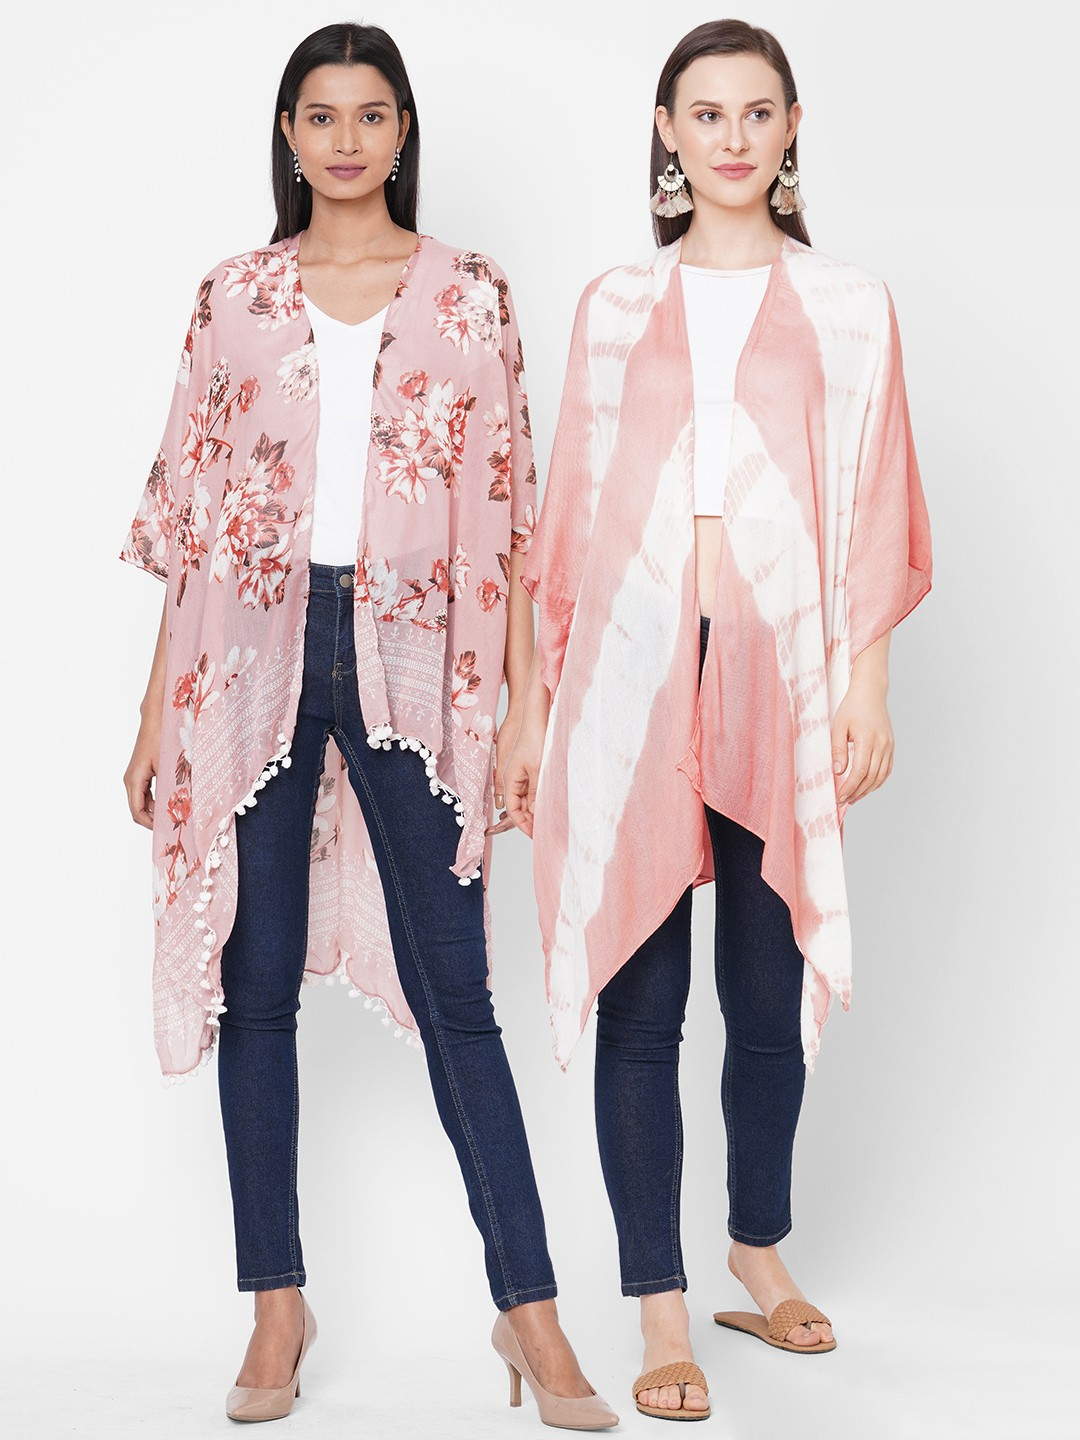 Get Wrapped | Get Wrapped Multicolour Viscose Tie-Dye & Polyester Printed Kimonos for Women -  Combo Pack of 2